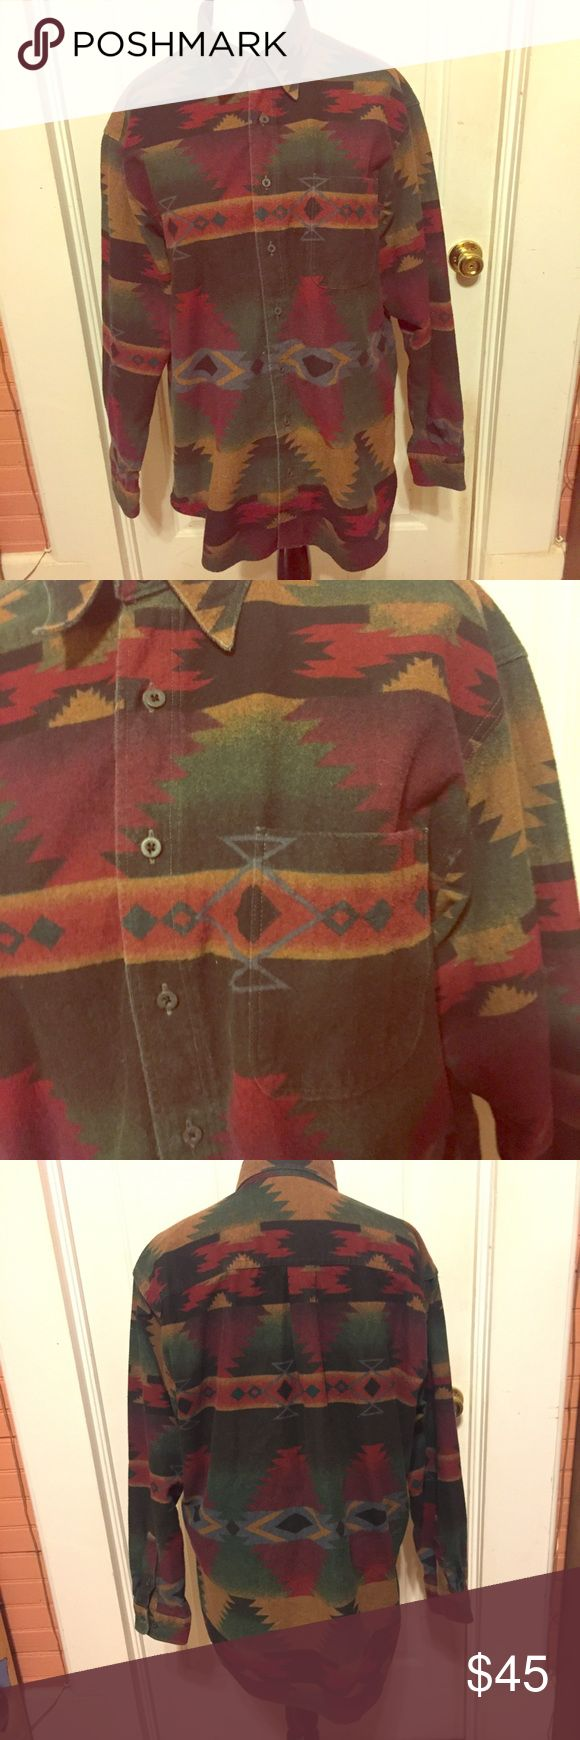 Vintage Woolrich Tribal/Western Print Jacket/Shirt Women's Vintage Woolrich Tribal/Western Print Jacket/Shirt. 100% Cotton. Size XL fits like a 12-14, possibly bigger. Would also look super cute on someone smaller too as an oversized shirt/jacket. The material is really thick, so it could work as a jacket. There's so many possibilities with this piece! Comment if you need measurements. Rare and unique item. In excellent condition. Has one breast pocket. Has two buttons on Sleeve cuffs so you…